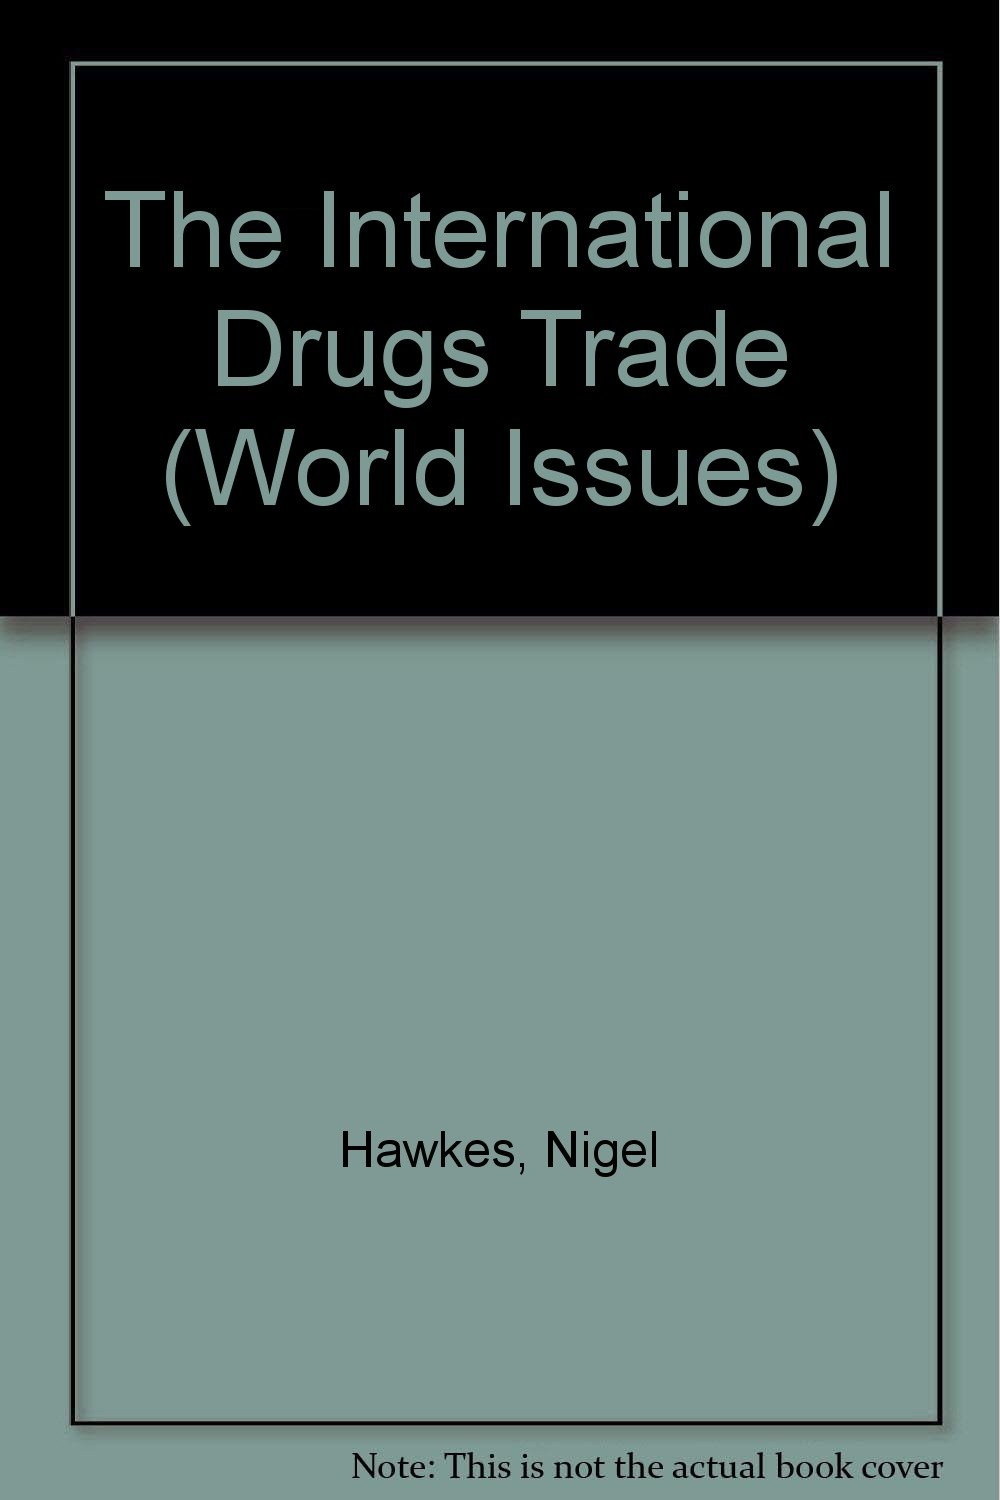 The International Drugs Trade (World Issues)